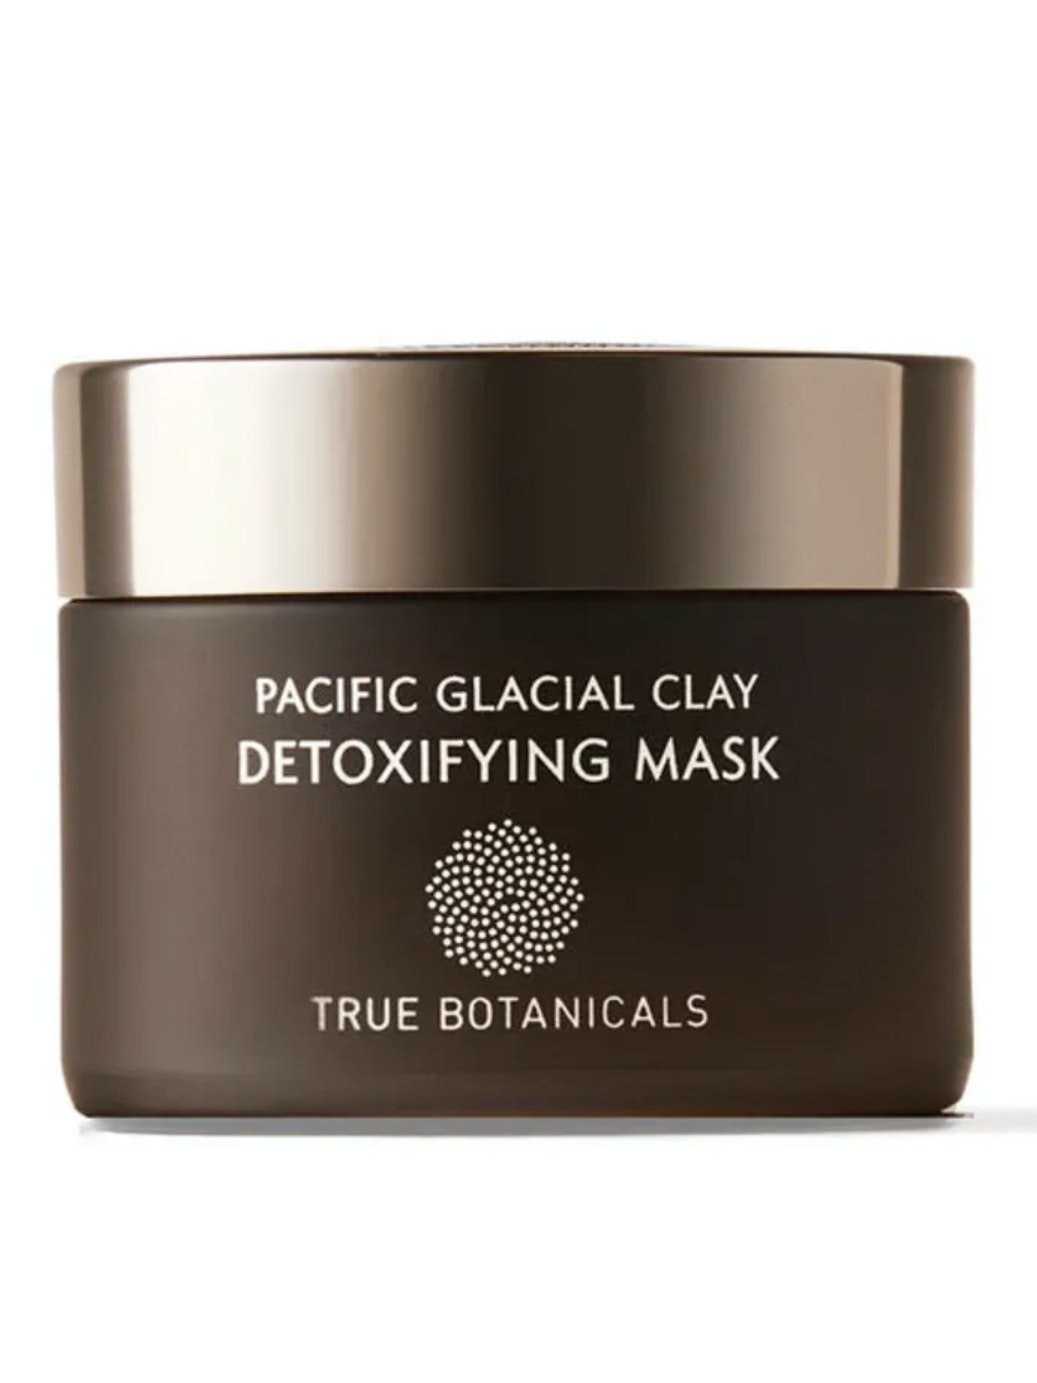 True Botanicals® Pacific Glacial Clay Detoxifying Mask